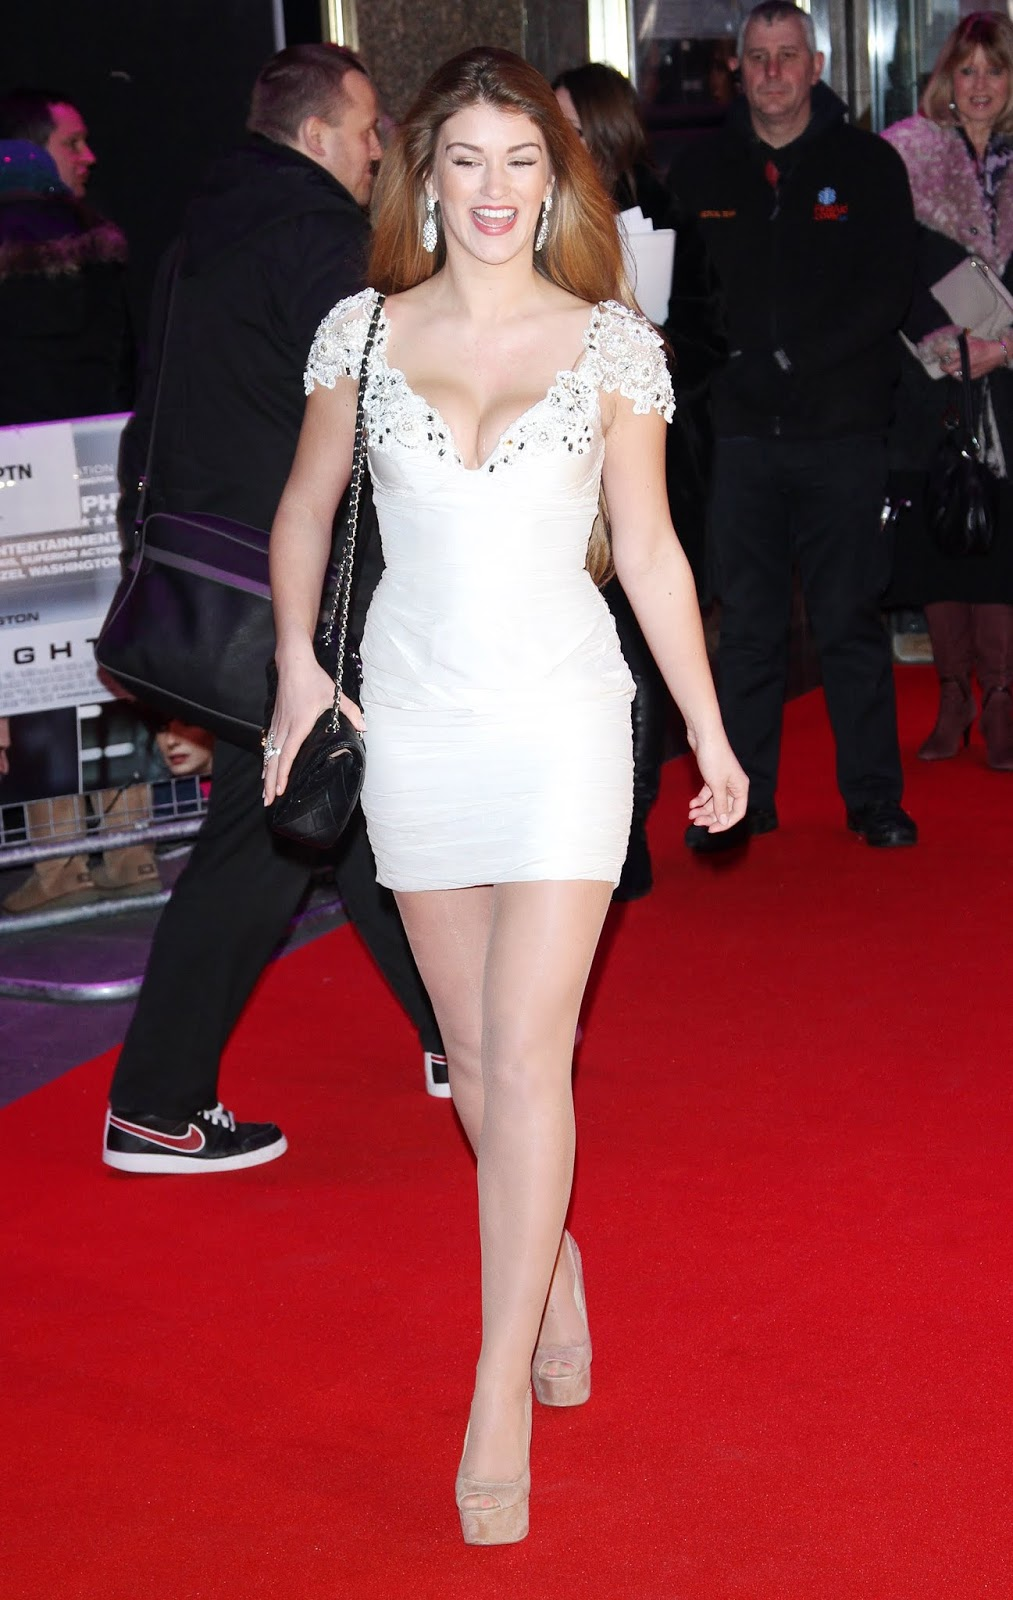 The Toe Cleavage Blog: Under 25 - Amy Willerton